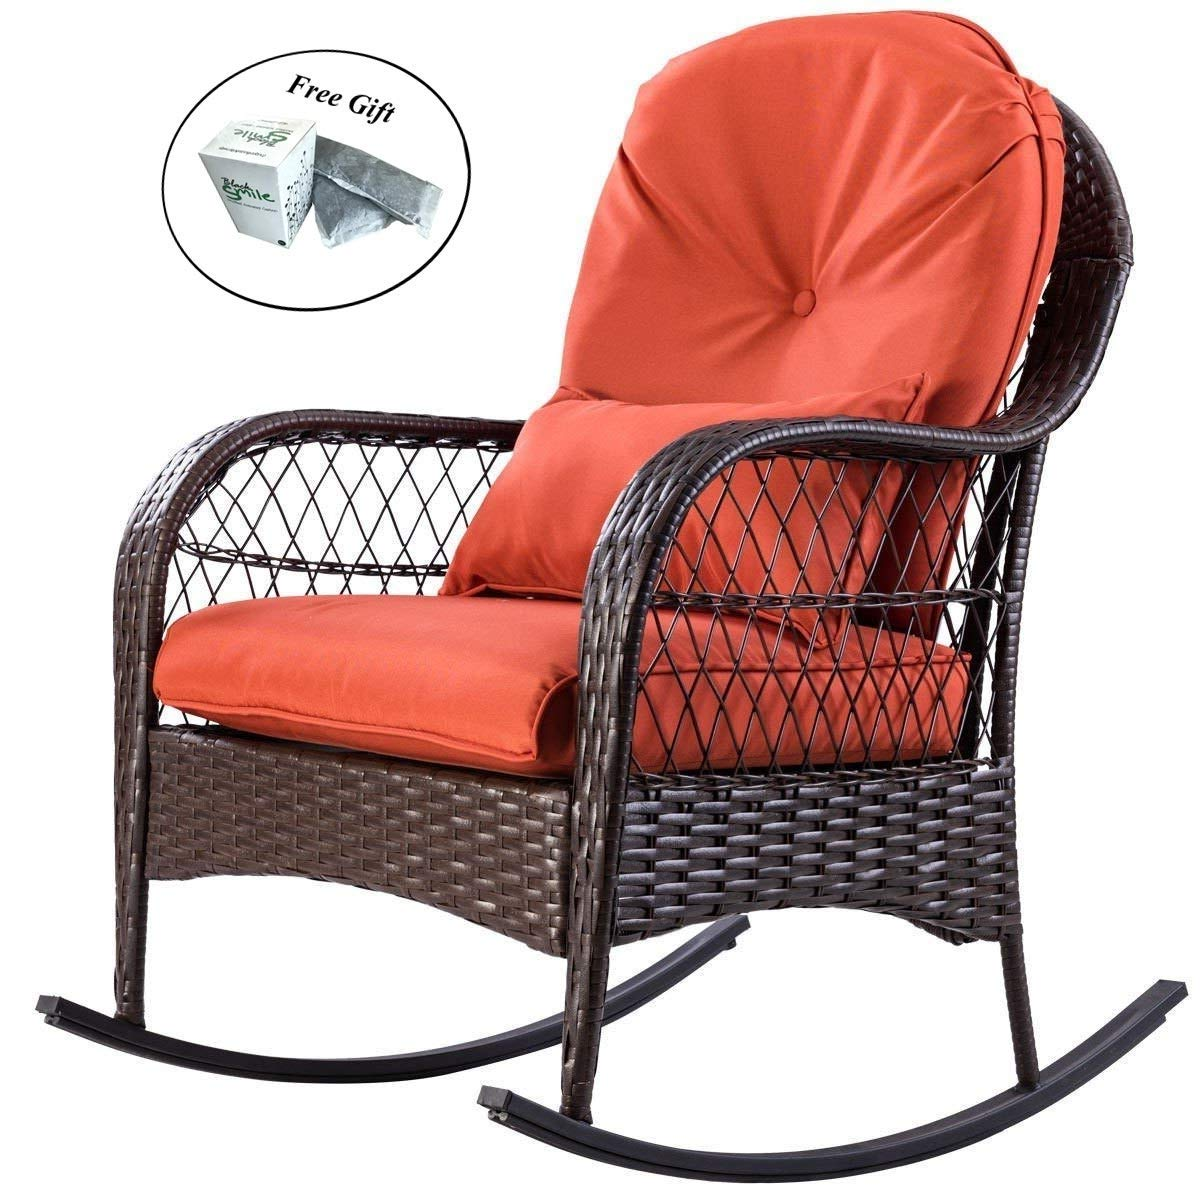 rattan wicker rocking chair cushion grey dining slipcovers cheap outdoor sets find get quotations patio porch deck rocker furniture by eight24hours